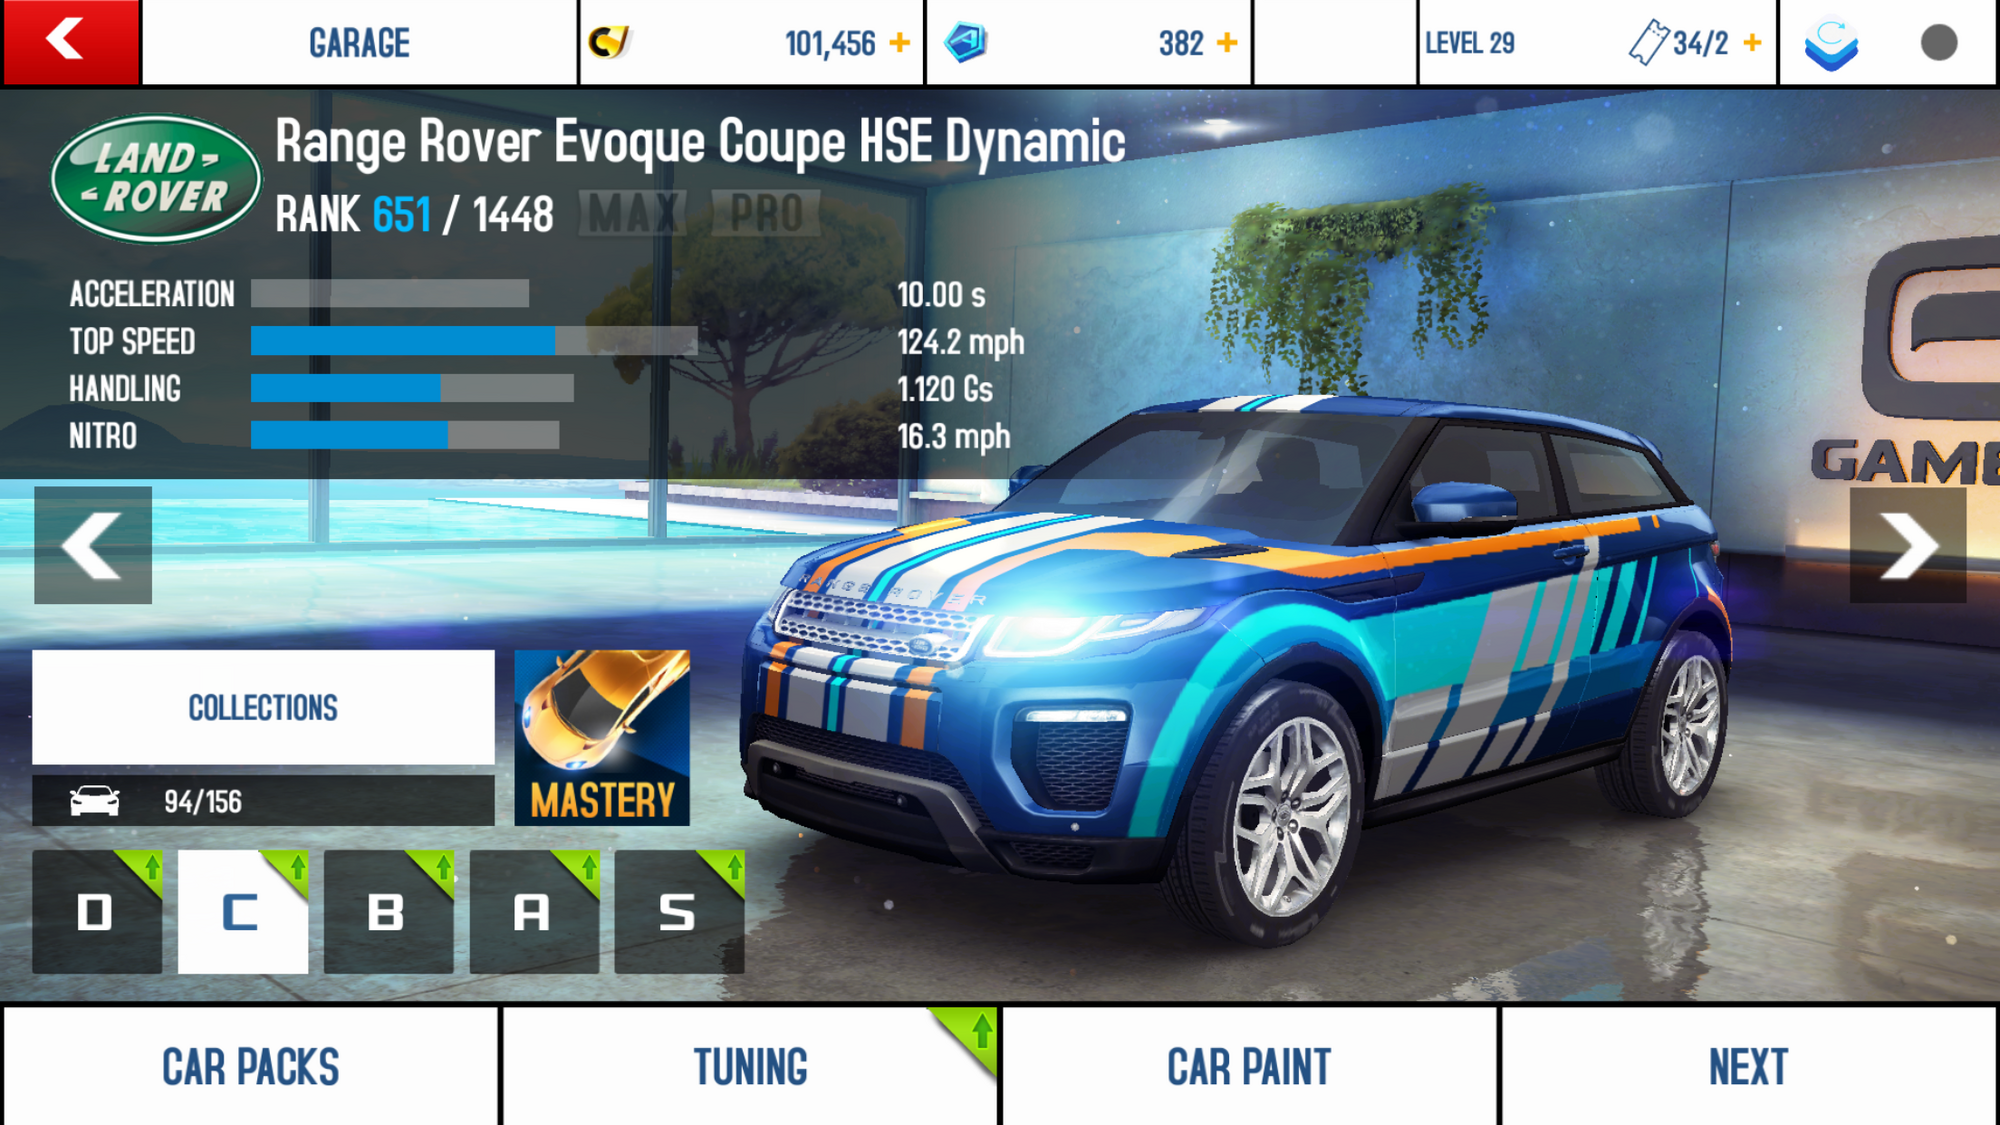 range rover evoque coupe hse dynamic performance stats